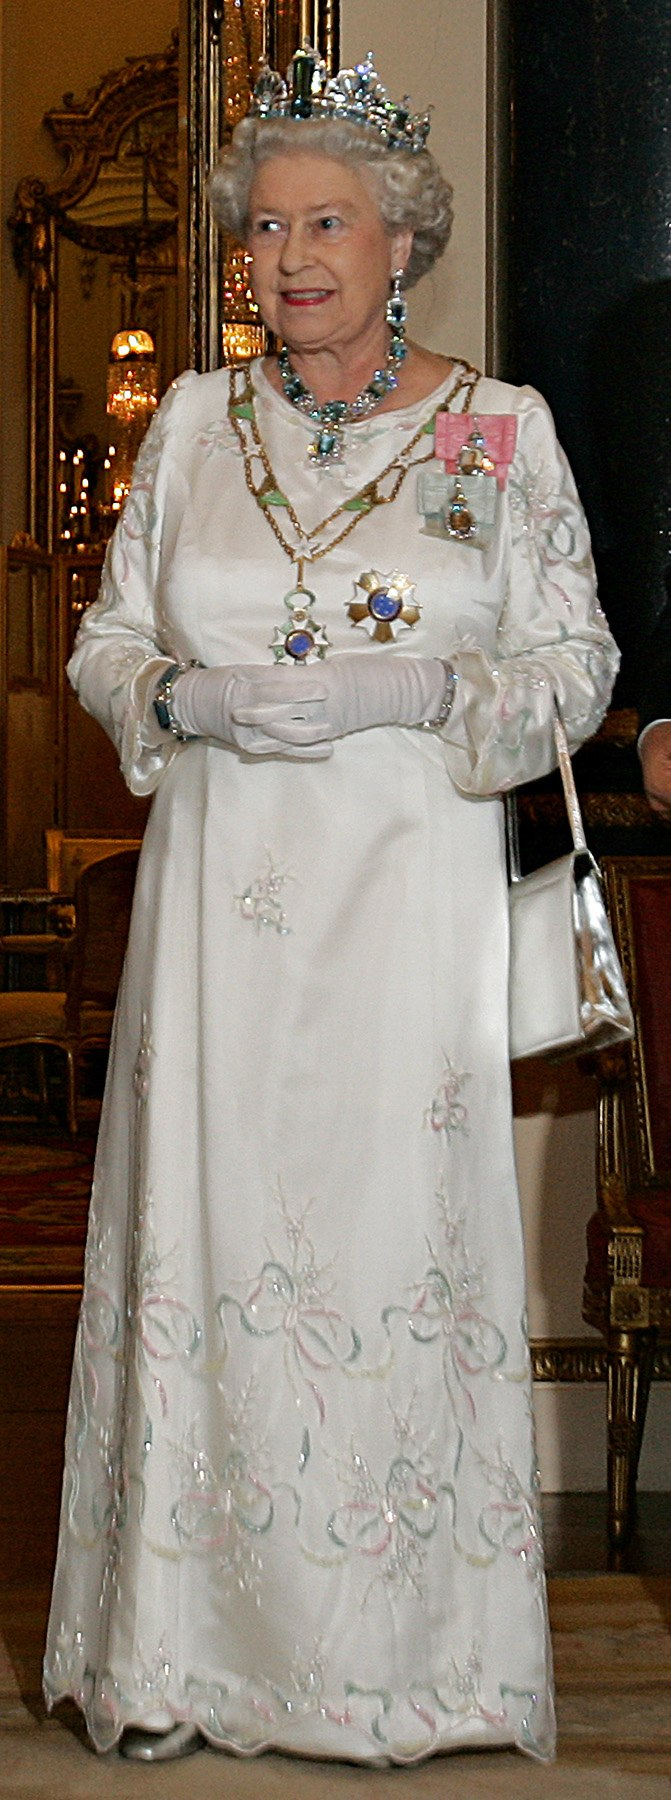 Elizabeth II, Buckingham Palace, 07 Mar 2006.jpeg